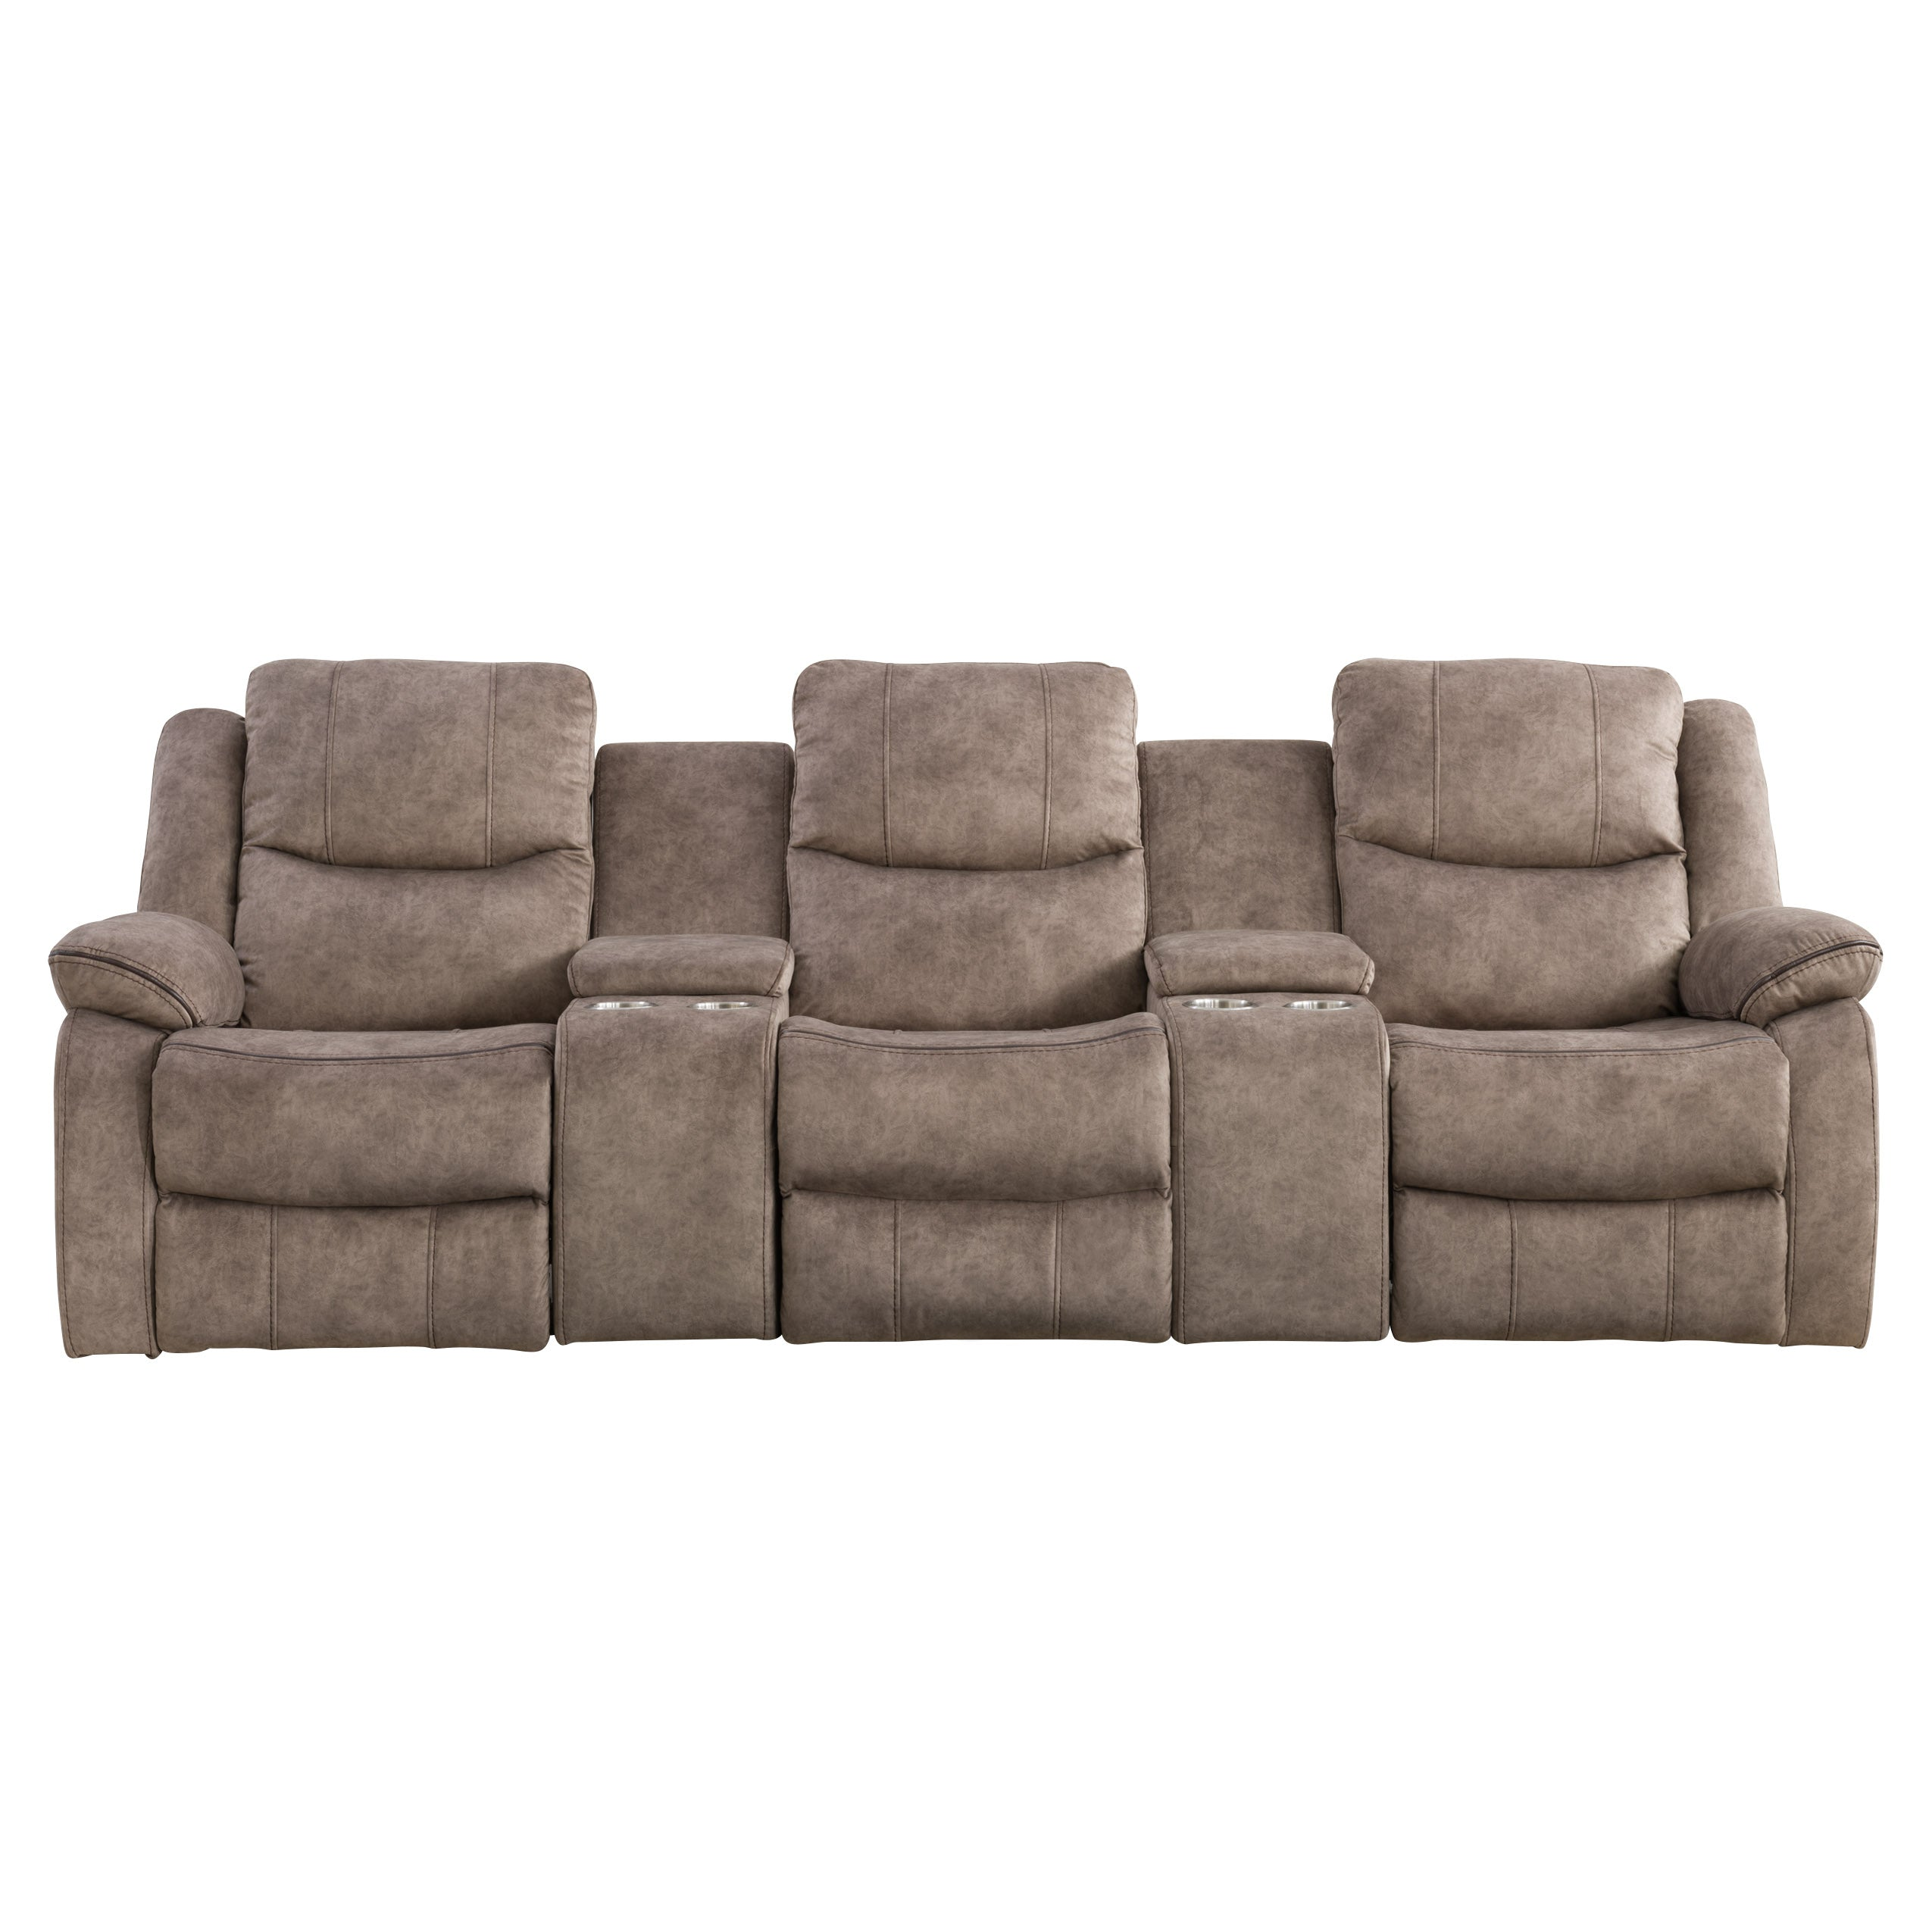 5pc Modular Reclining Home Theater Style Sofa Sectional With Storage